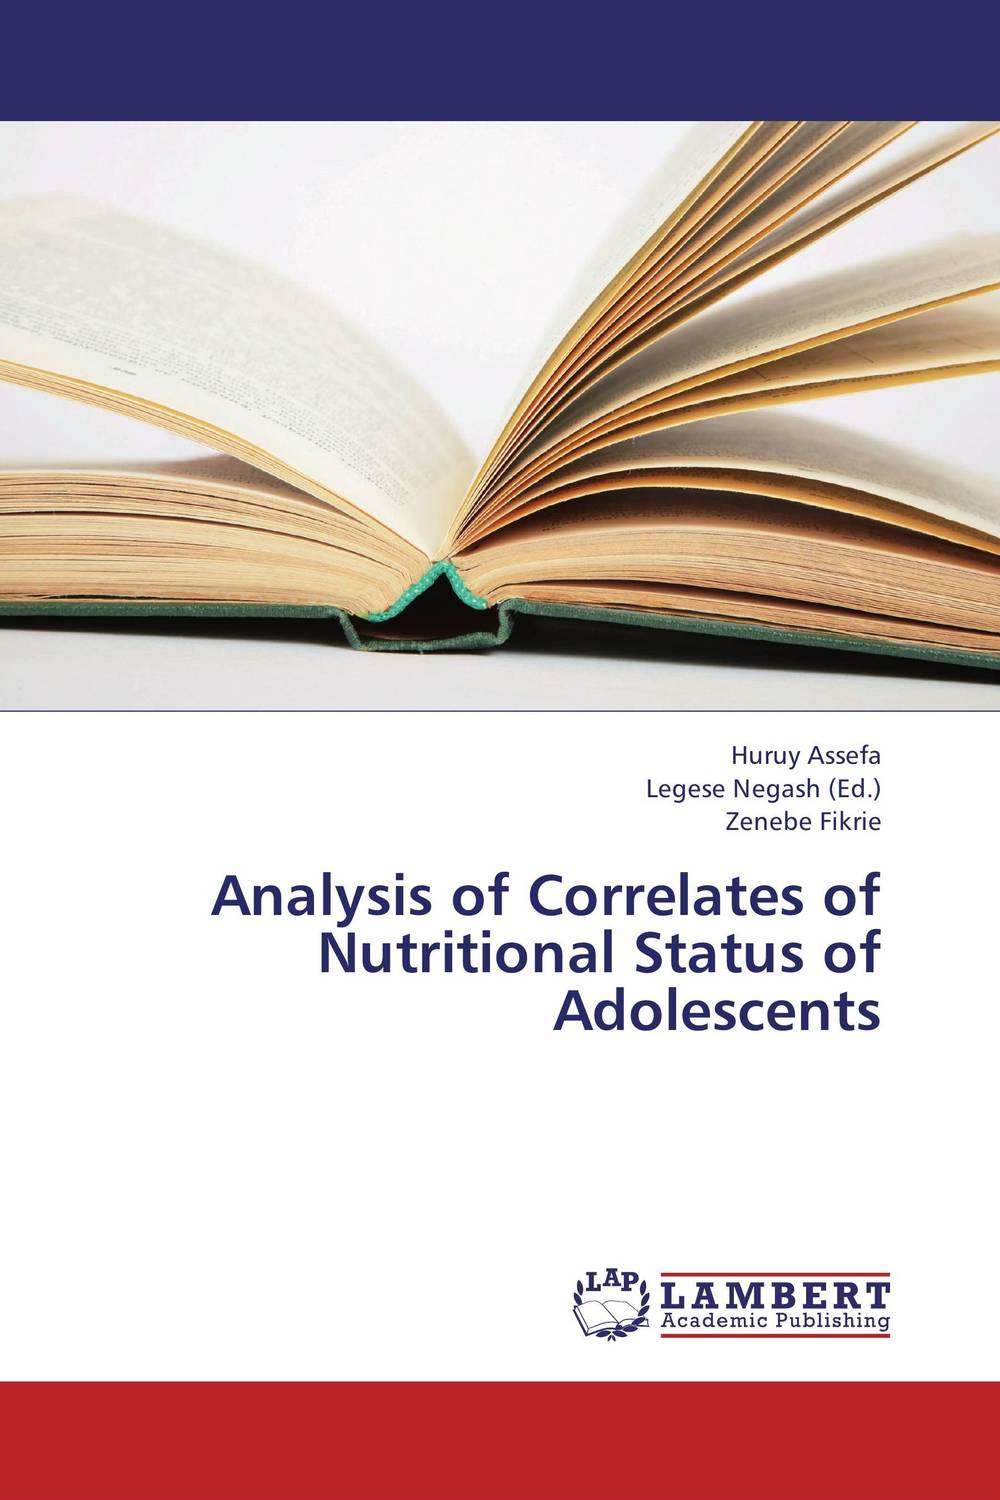 Analysis of Correlates of Nutritional Status of Adolescents